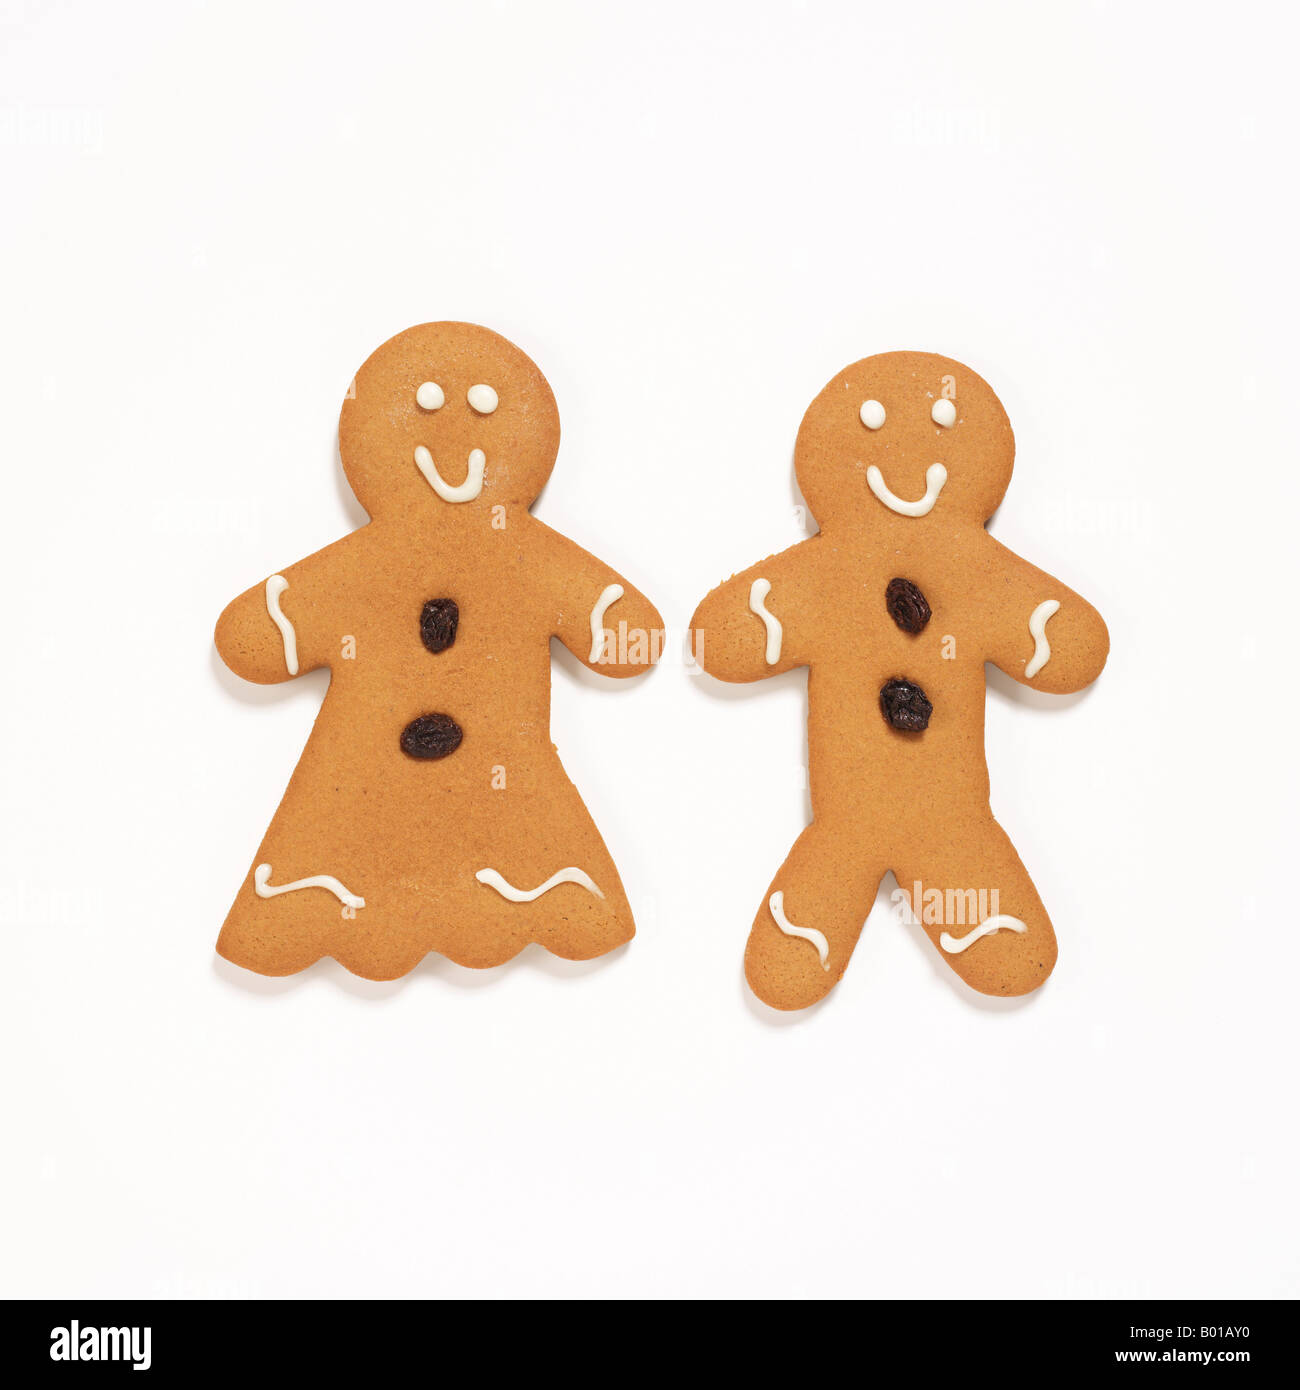 Gingerbread cookies Photo Stock